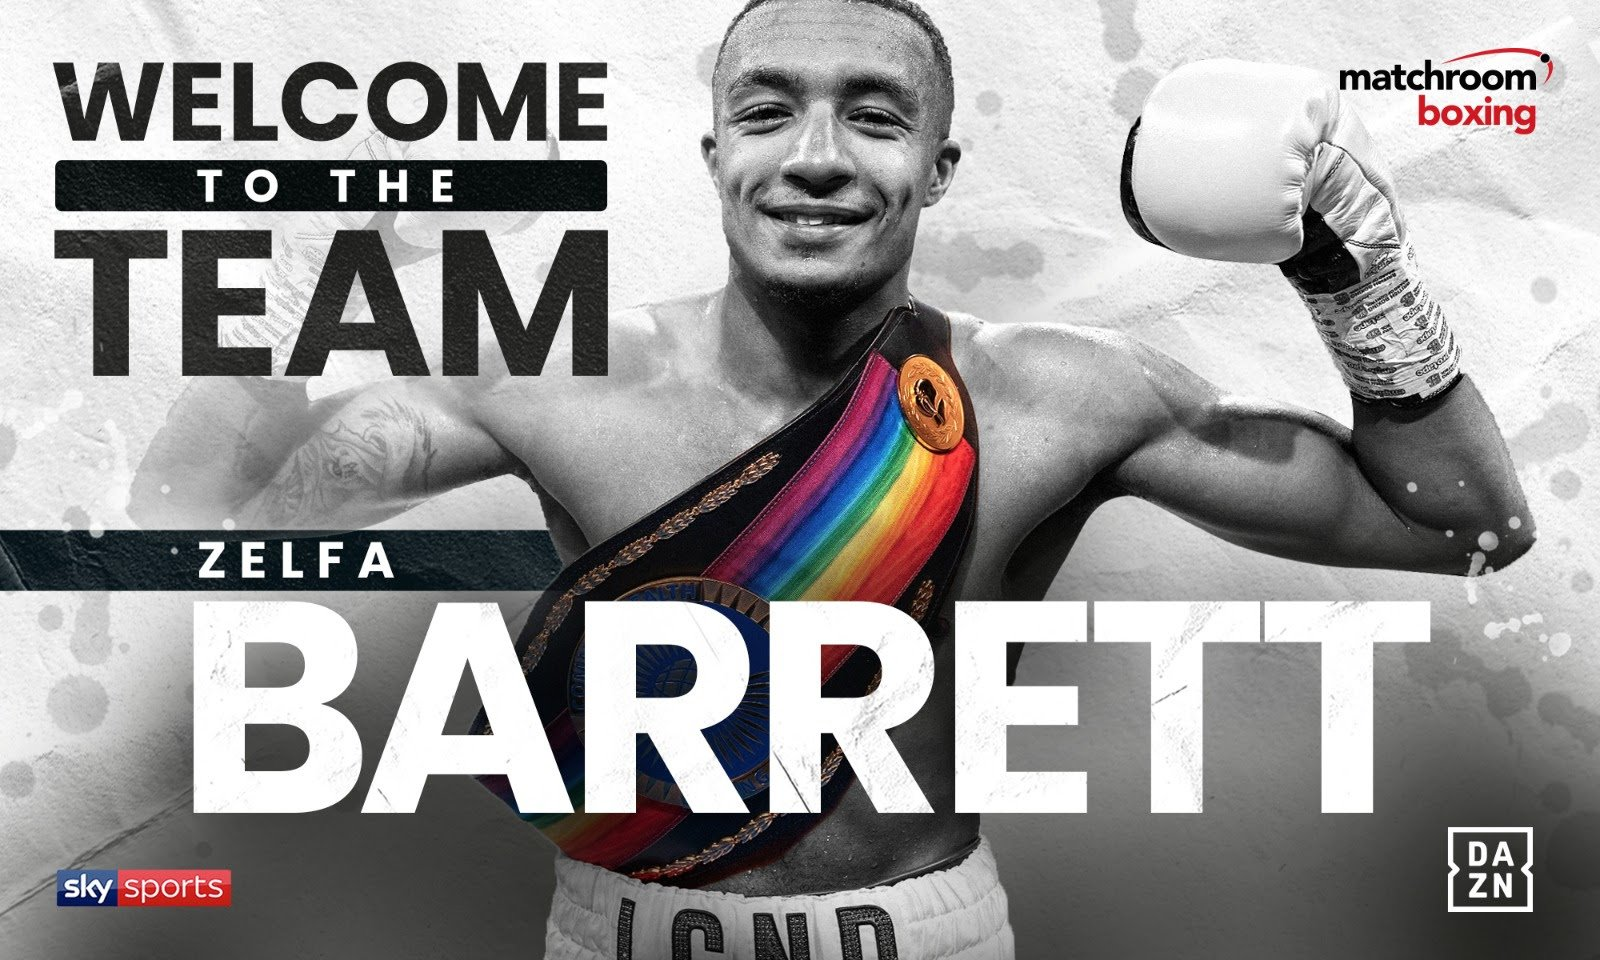 Zelfa Barrett - Zelfa Barrett has signed a promotional deal with Eddie Hearn's Matchroom Boxing and will make his highly-anticipated Sky Sports debut on the blockbuster Dillian Whyte vs. Alexander Povetkin bill at Manchester Arena on Saturday, May 2.